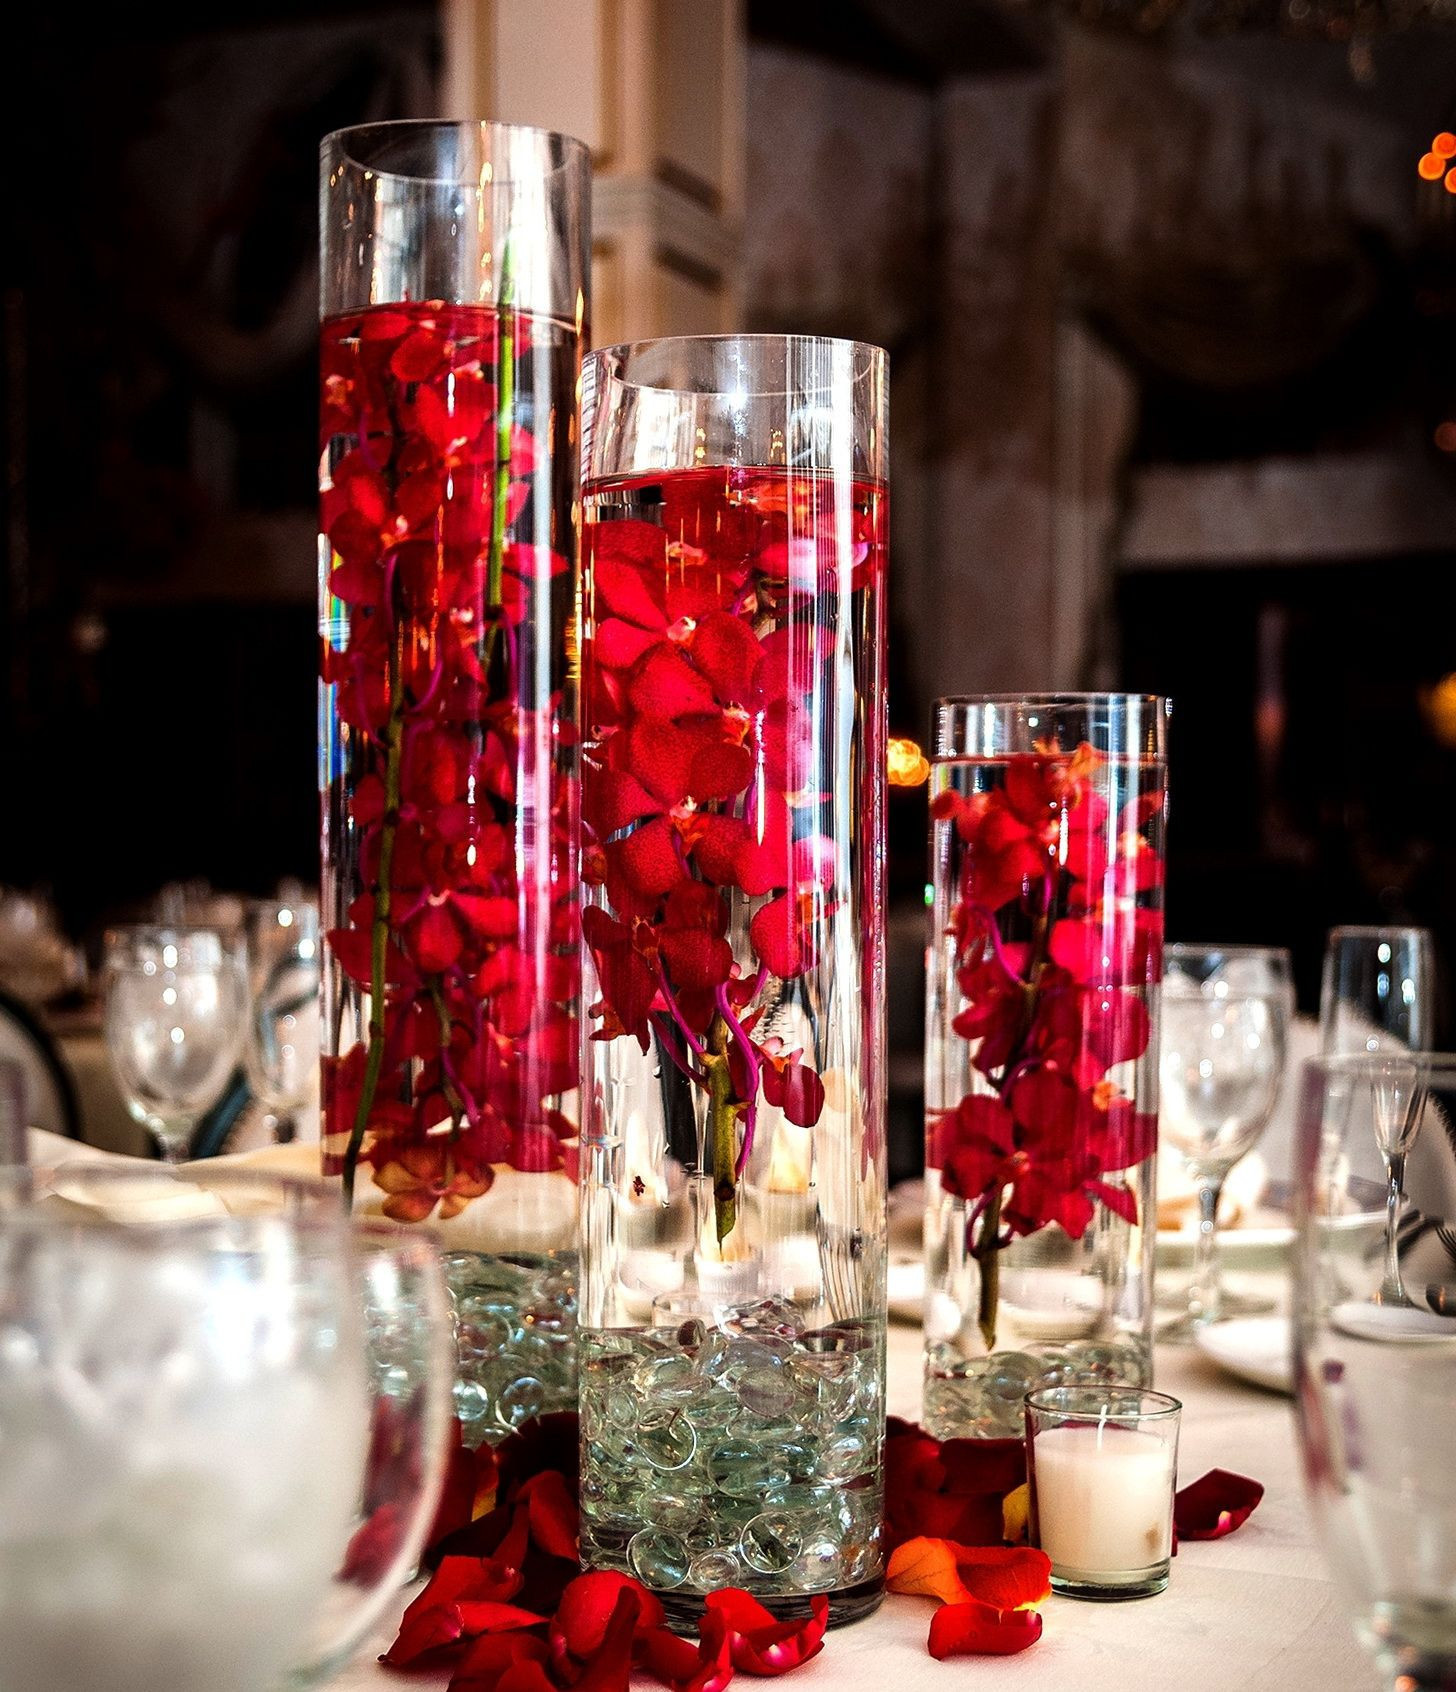 tall red vases cheap of heavy glass vase image living room vases wholesale new h vases big with heavy glass vase stock large glass vase centerpieces decorations pinterest of heavy glass vase image living